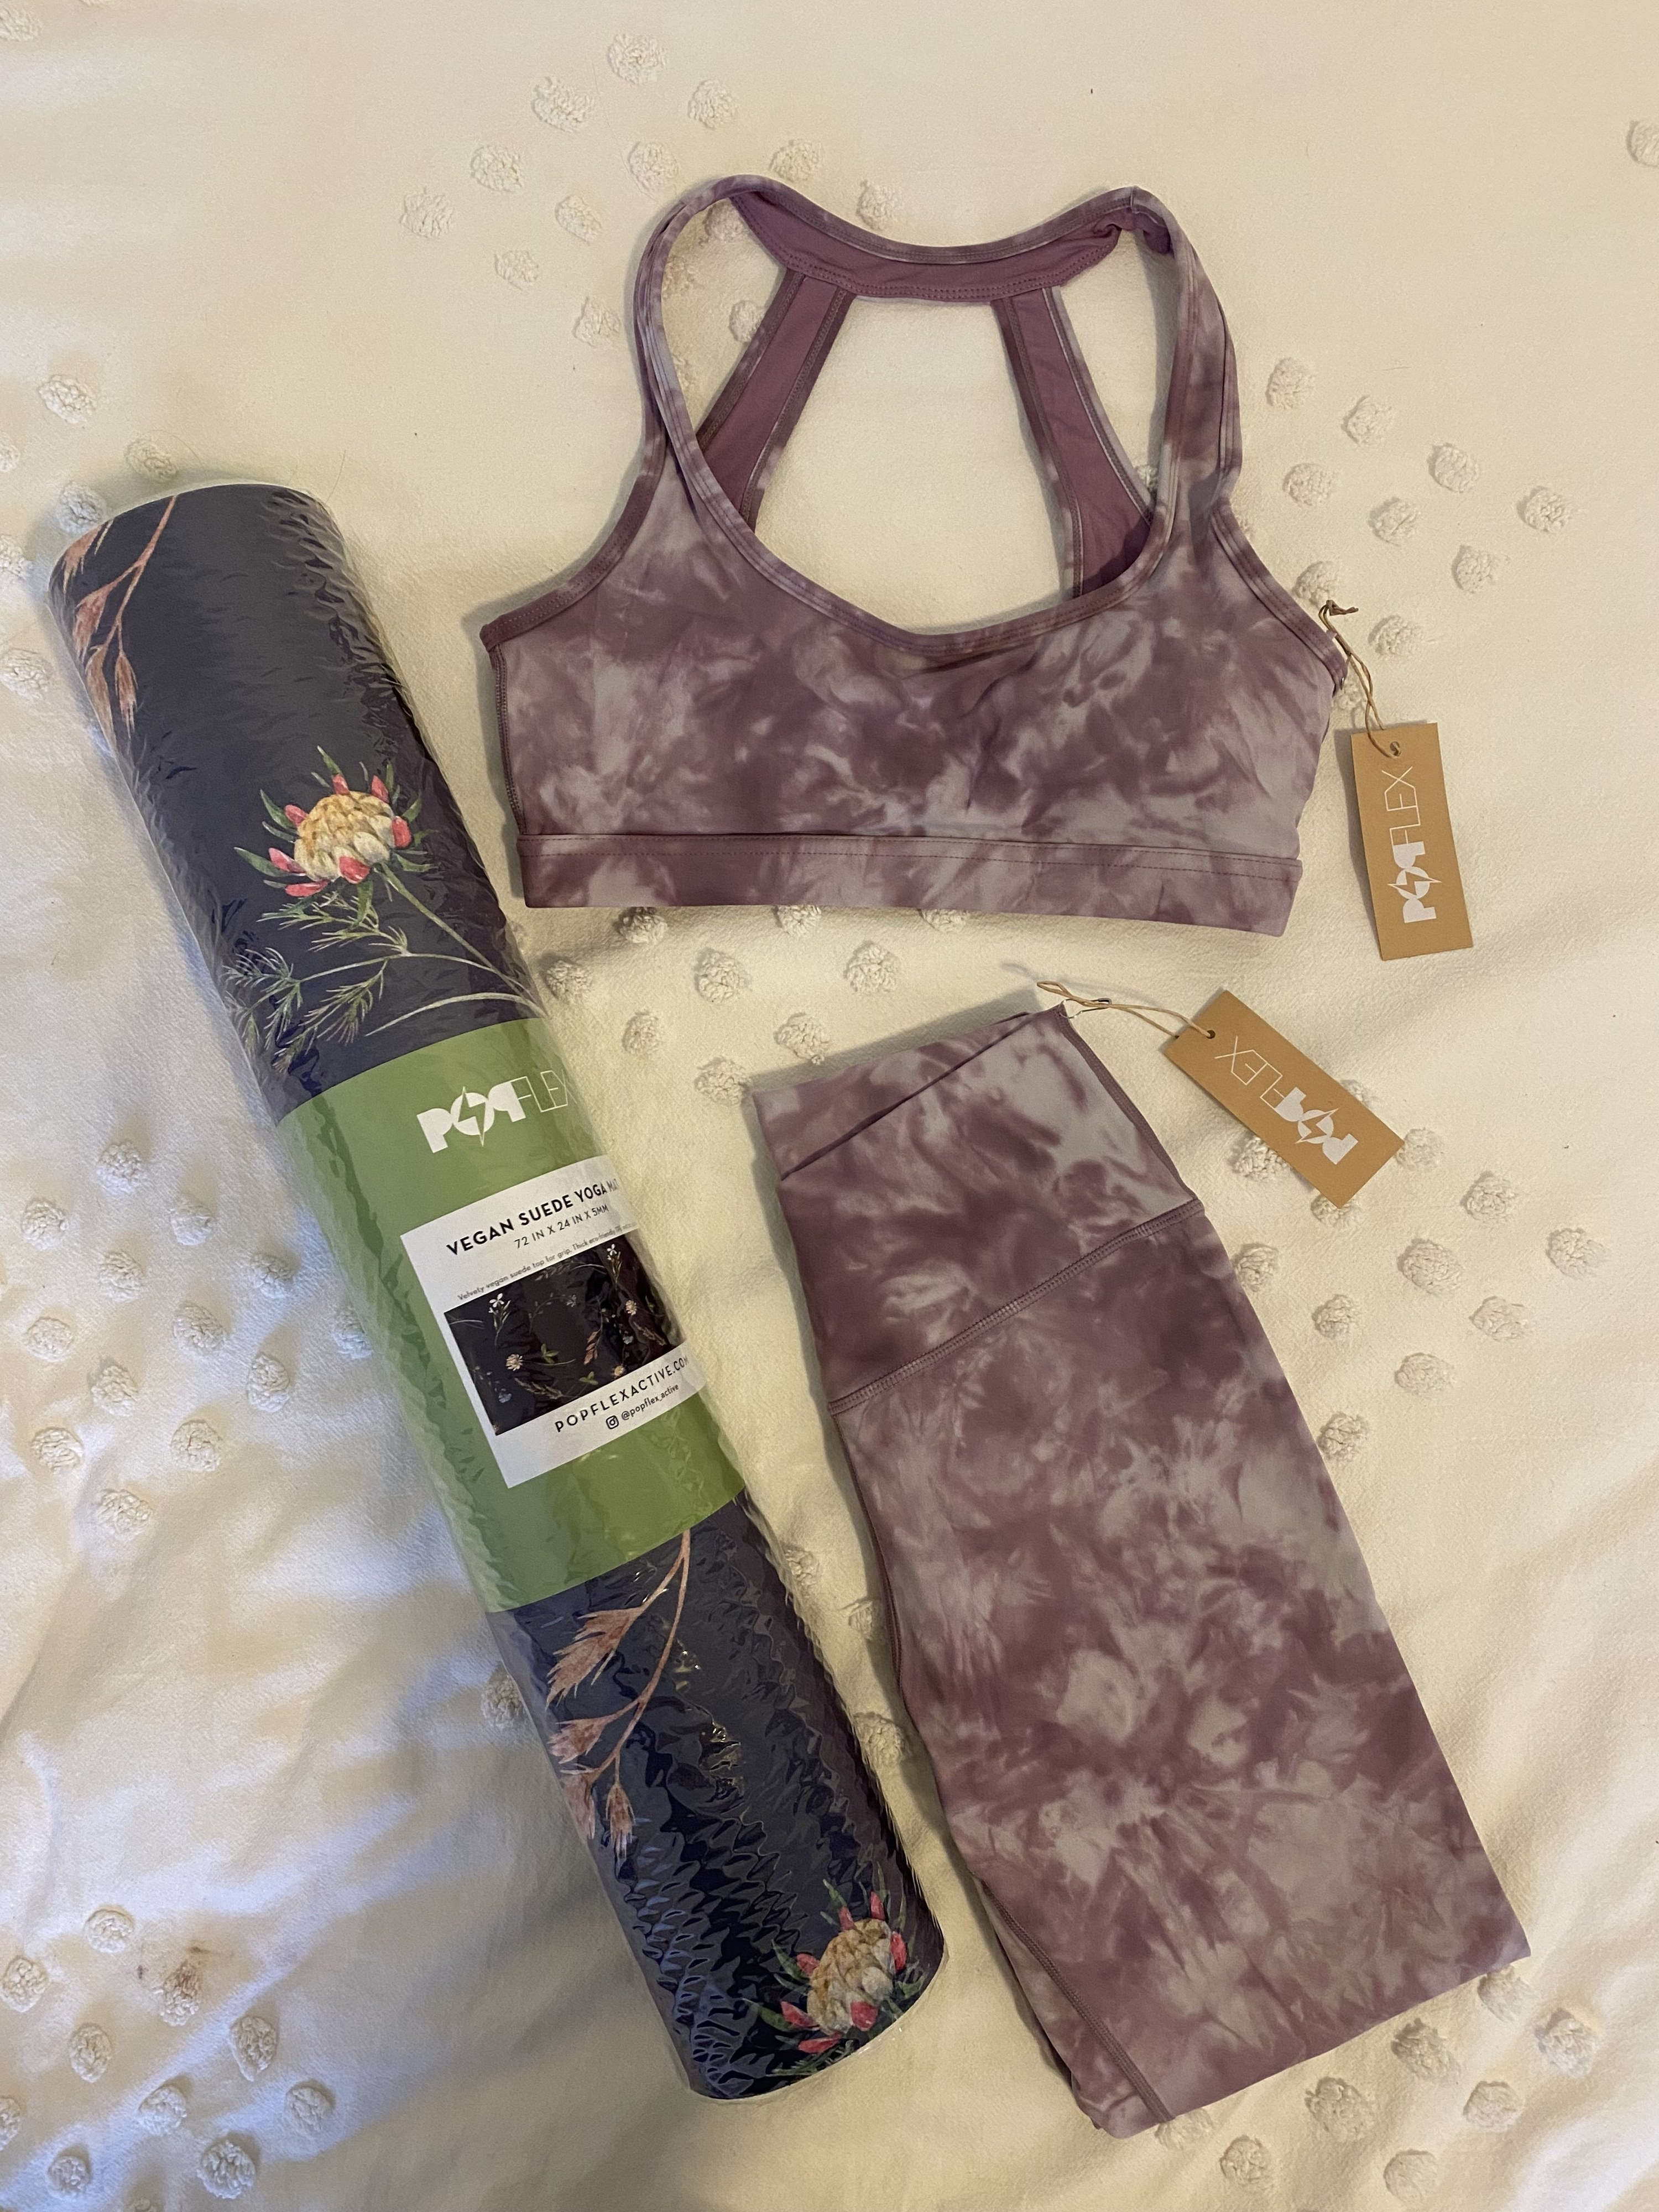 The yoga mat, sports bra, and leggings laid out on my bed